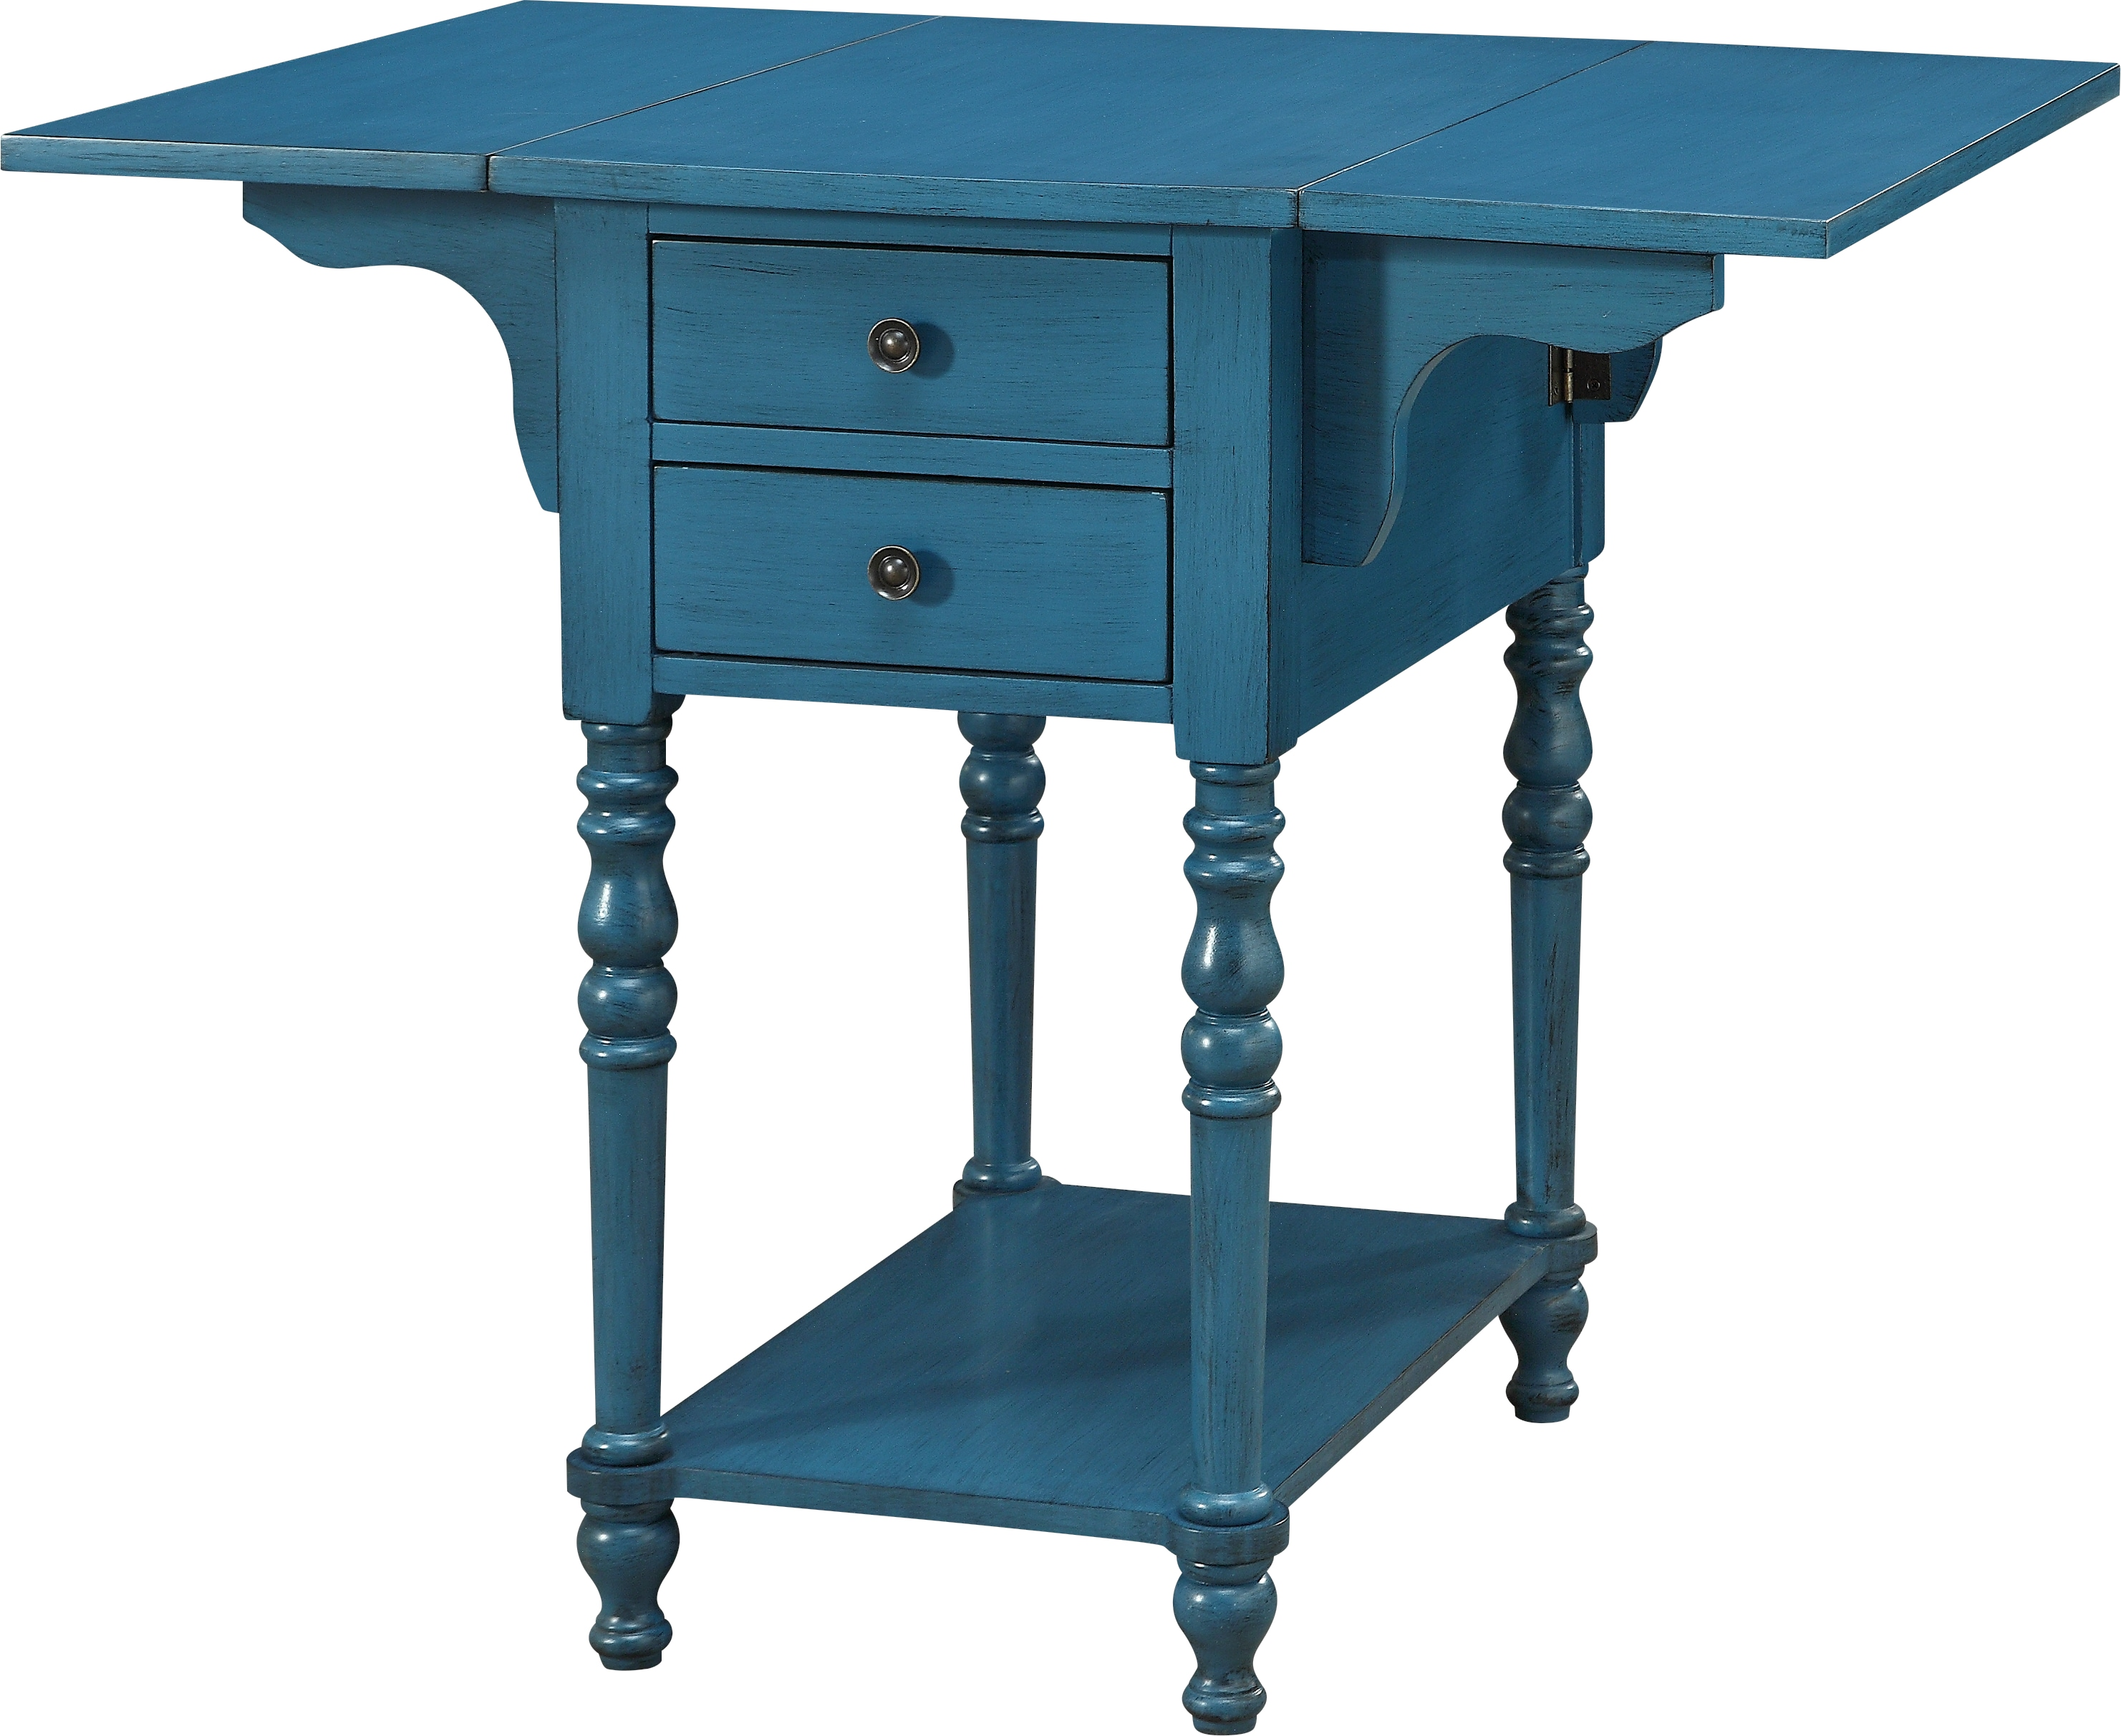 darcell blue accent table tables colors aqua knotty pine dining set threshold transition chair cushions patio bistro hexagon target mirrored console cabinet bright colored coffee